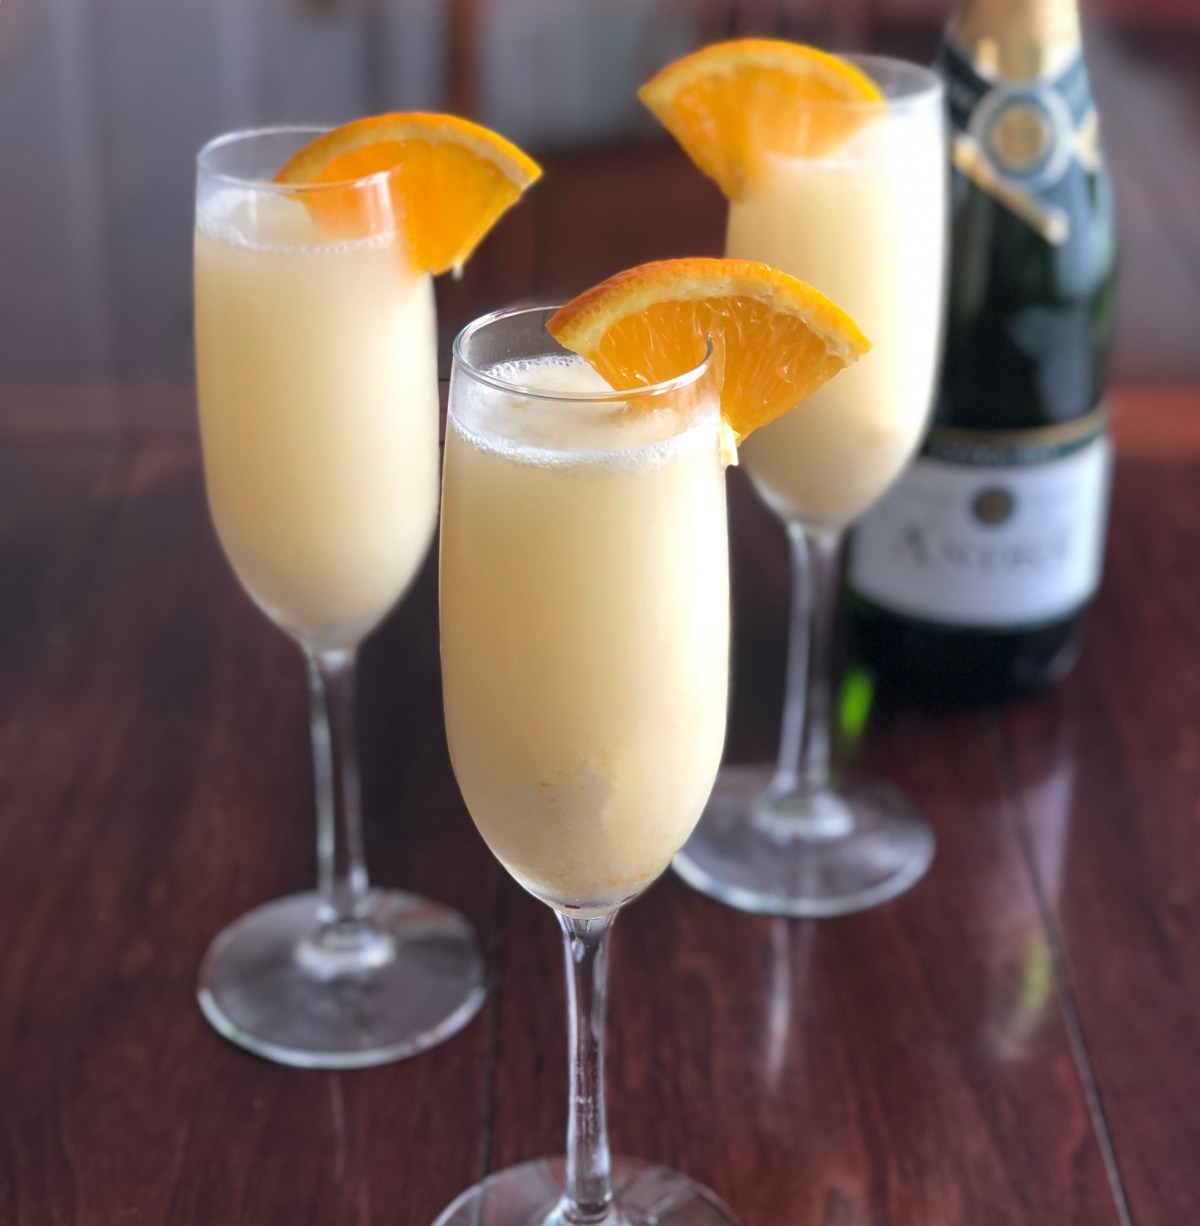 Creamsicle Mimosas #creamsiclemimosa #mimosarecipes #mimosas #brunch #brunchrecipes #mothersdaybrunch #creamsicle